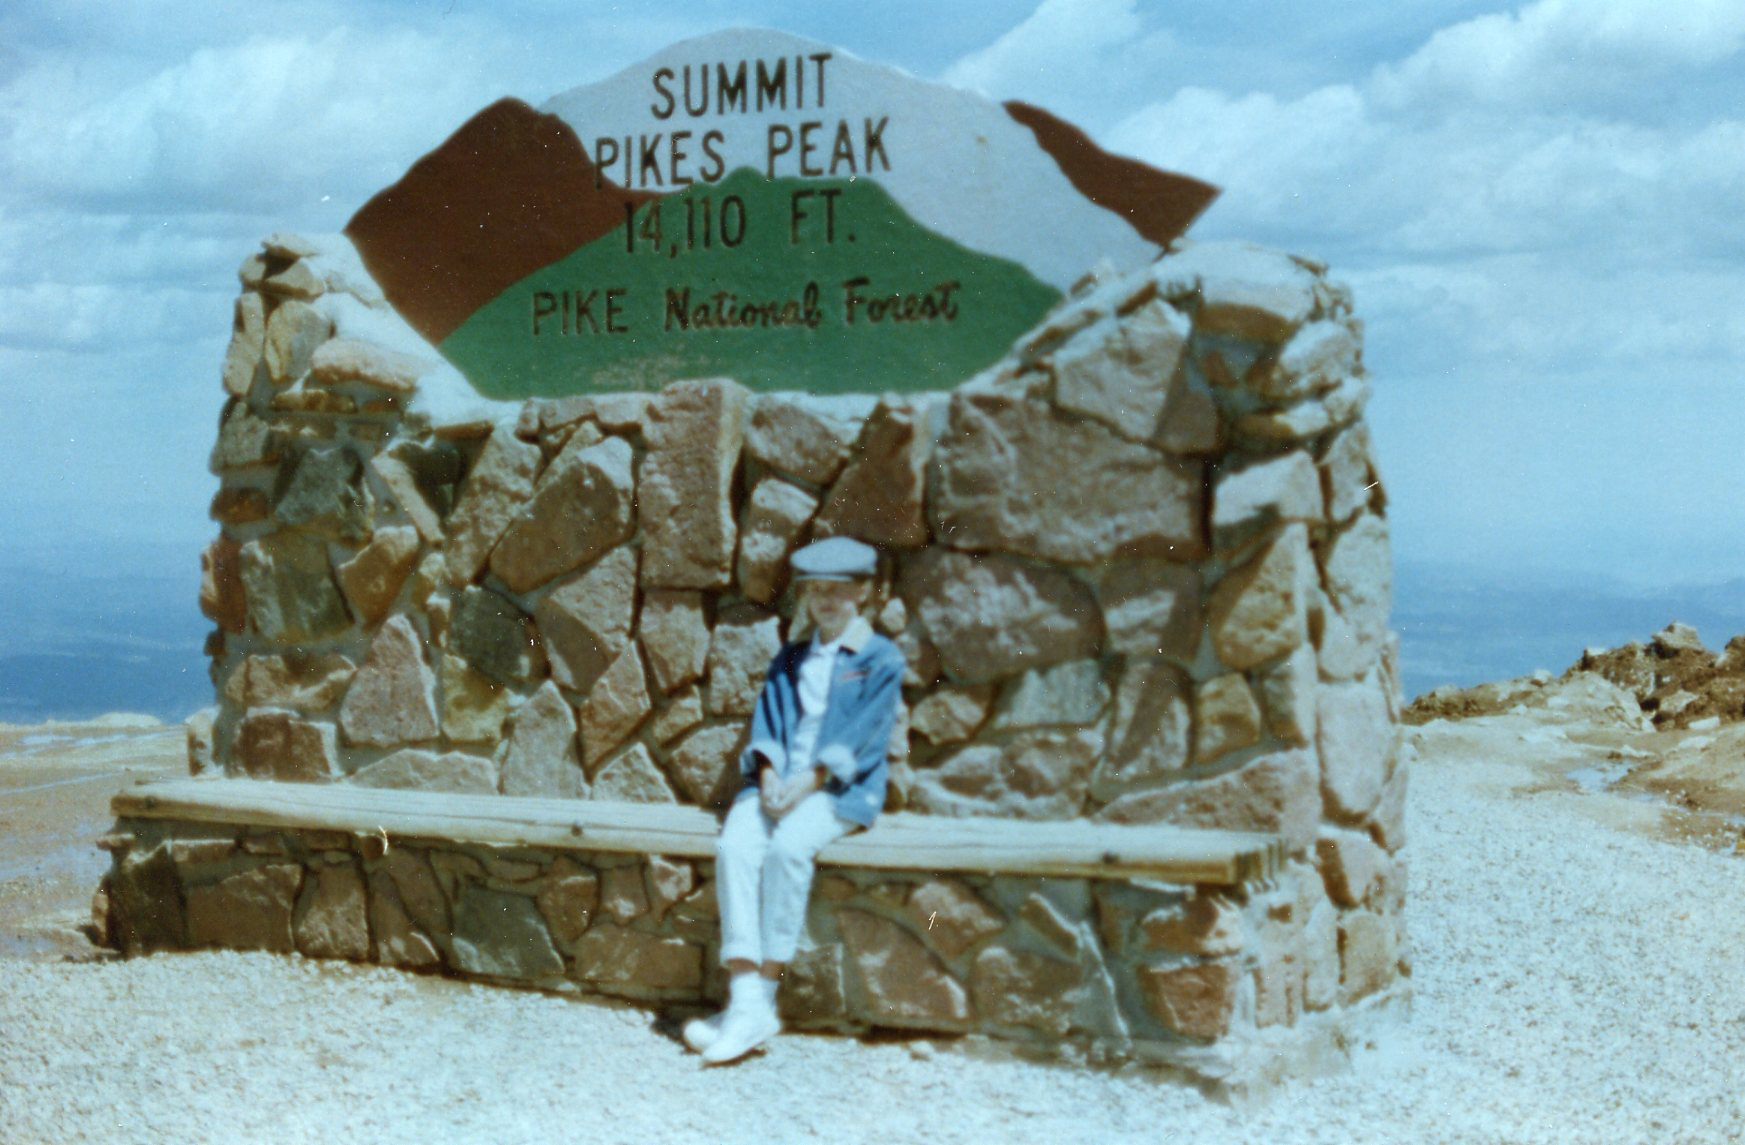 PK Knickerbocker at the summit of Pikes Peak as a child.